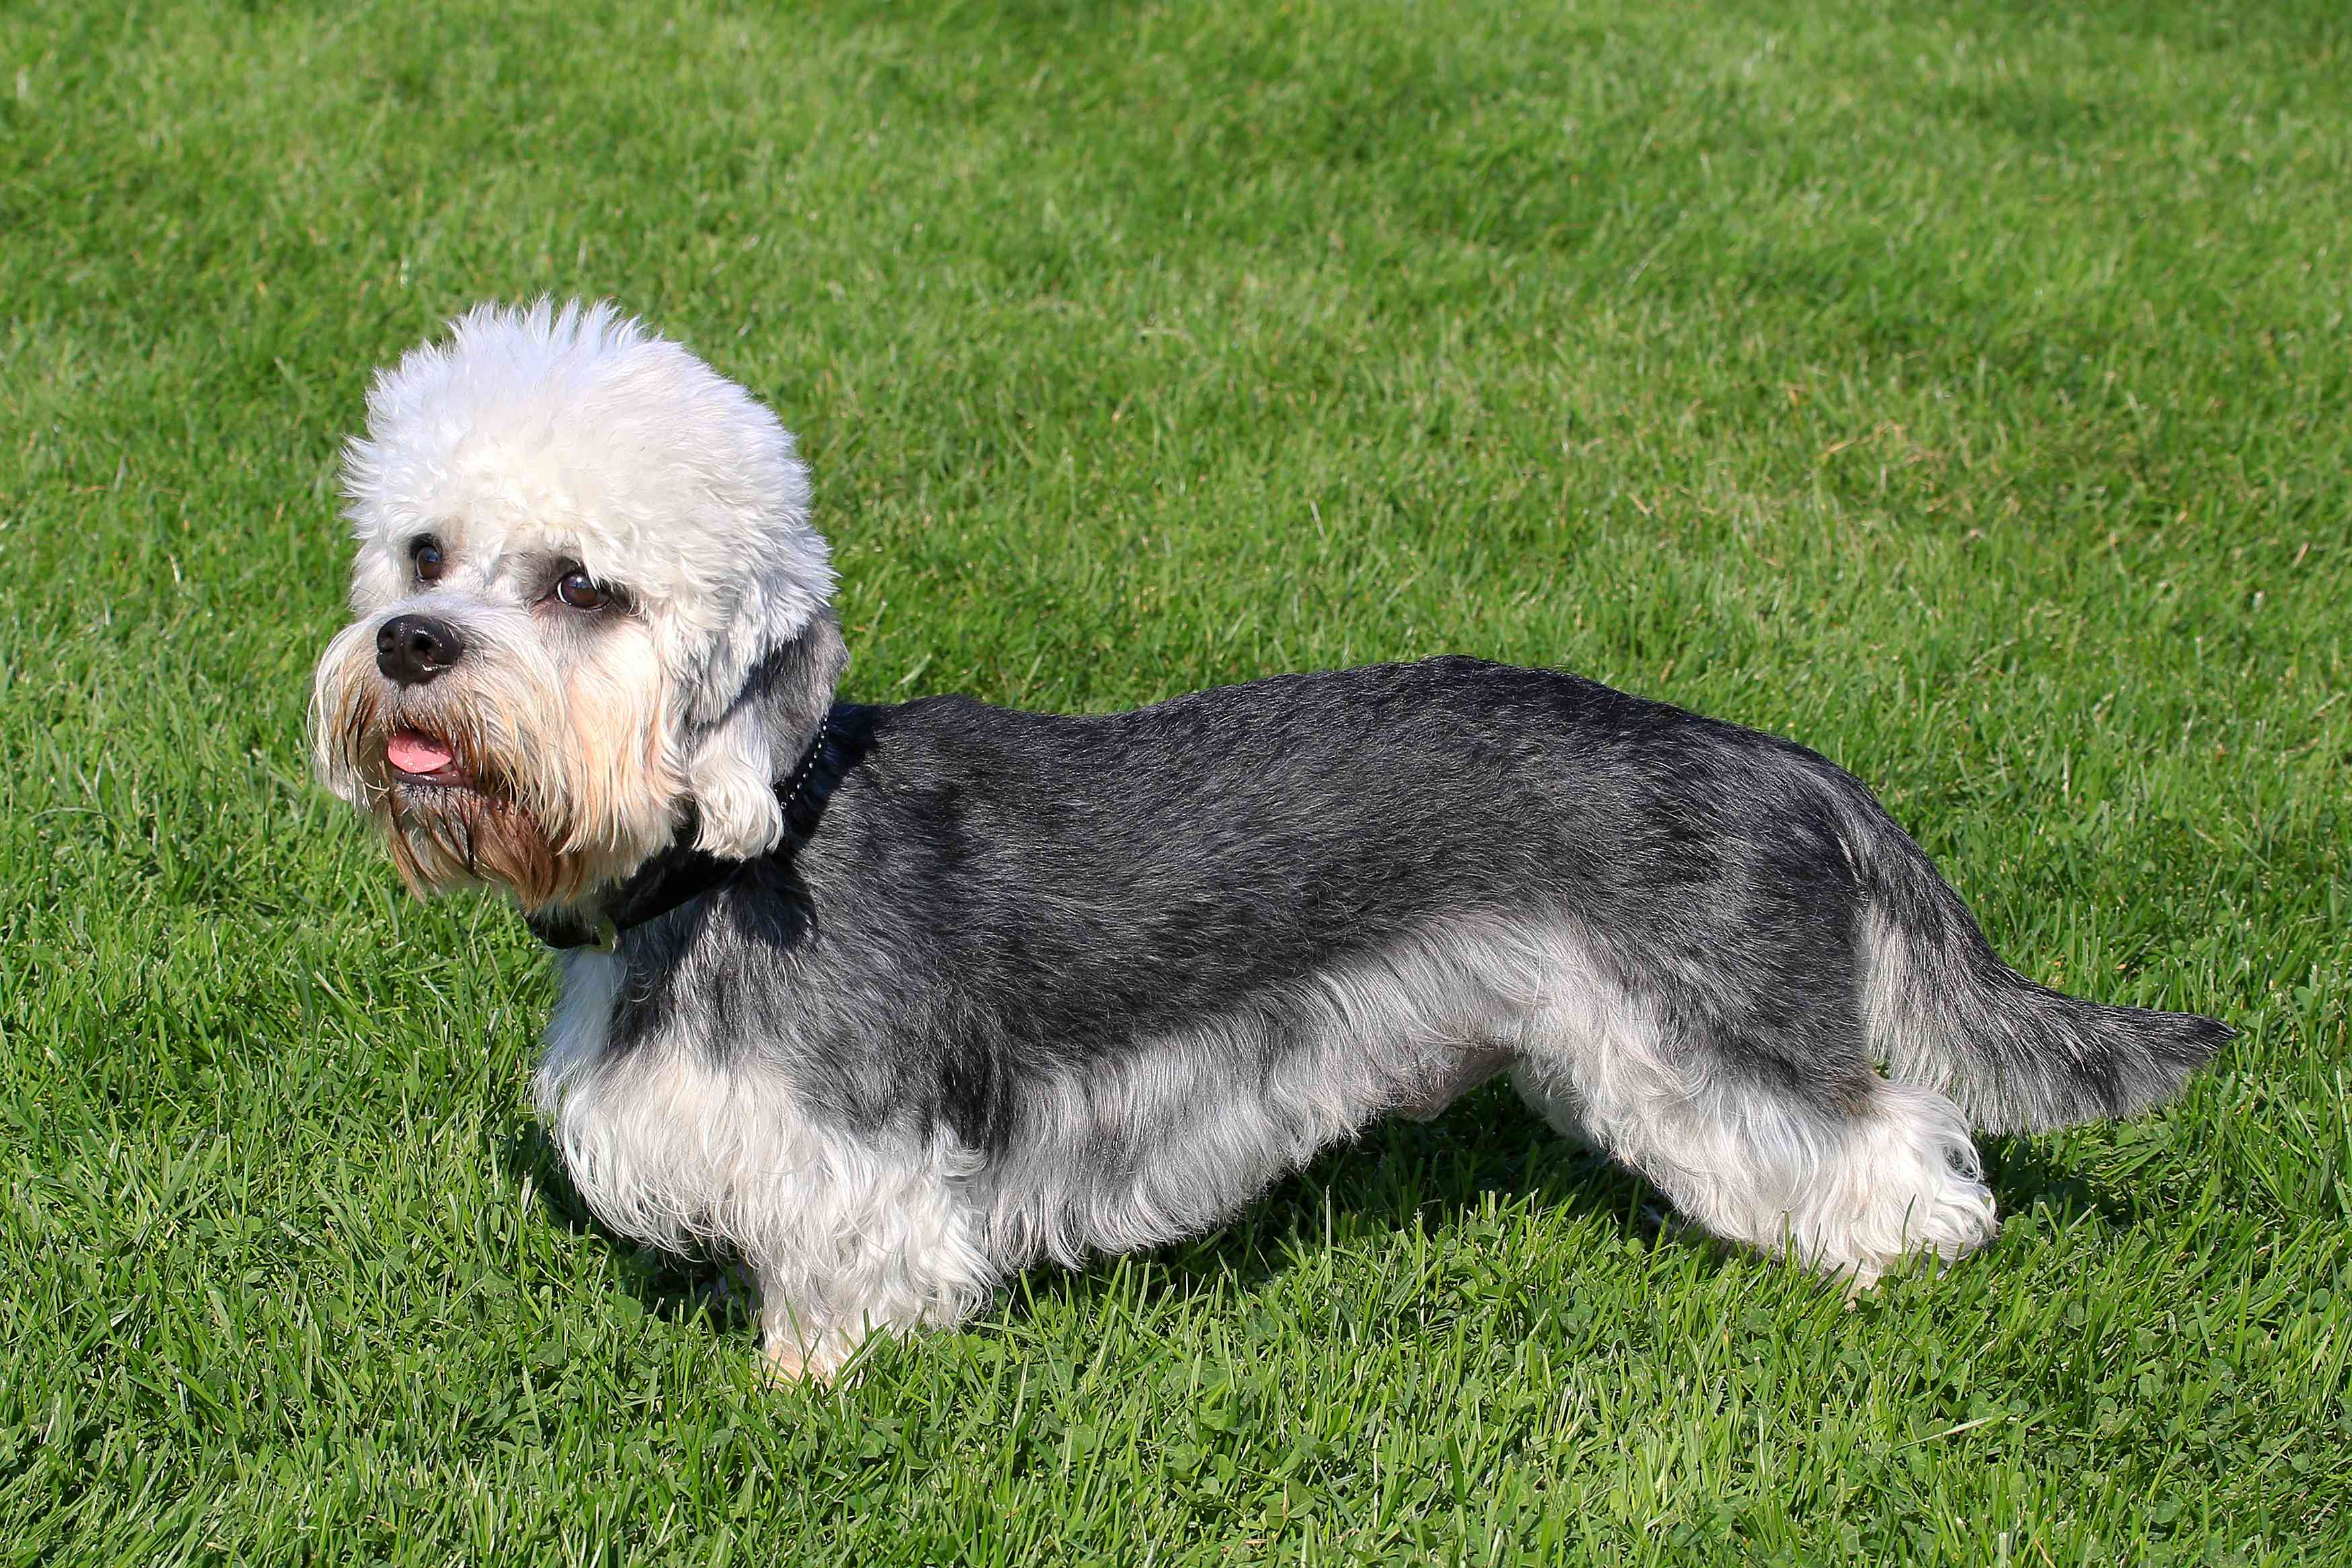 White and gray Dandie Dinmont terrier